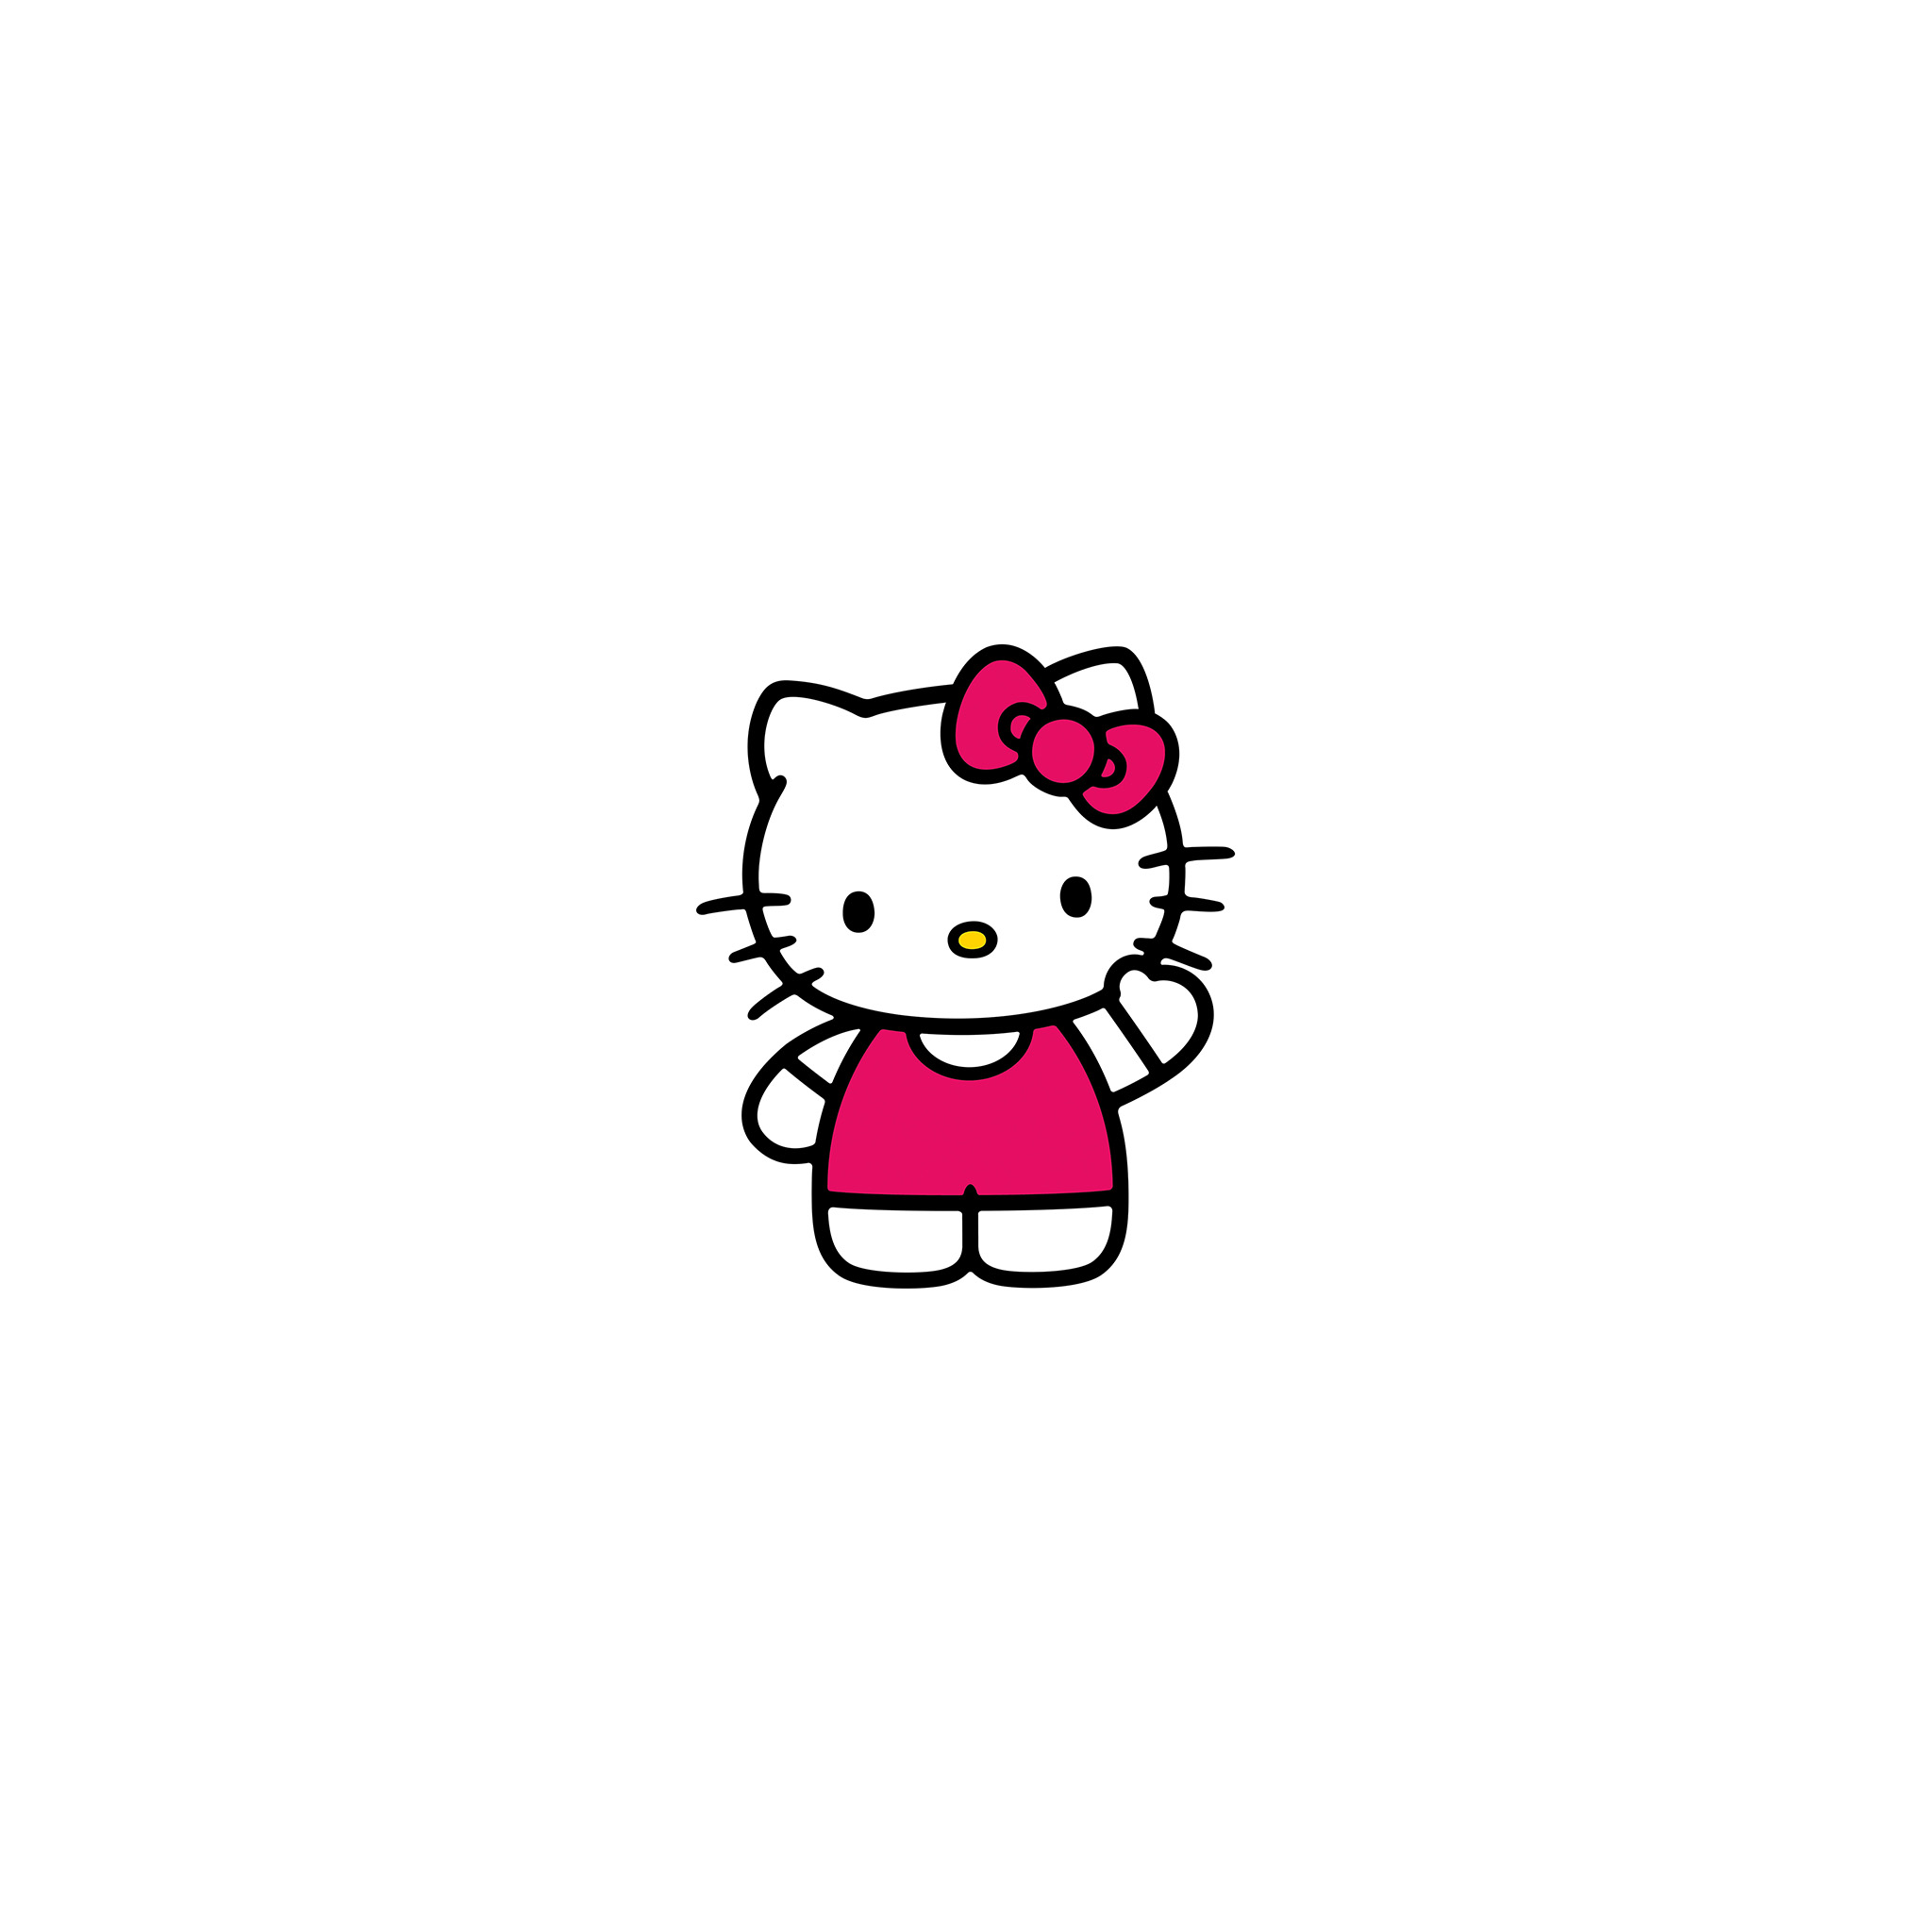 Amazing Wallpaper Hello Kitty Ipad Air - papers  Trends_491558.jpg